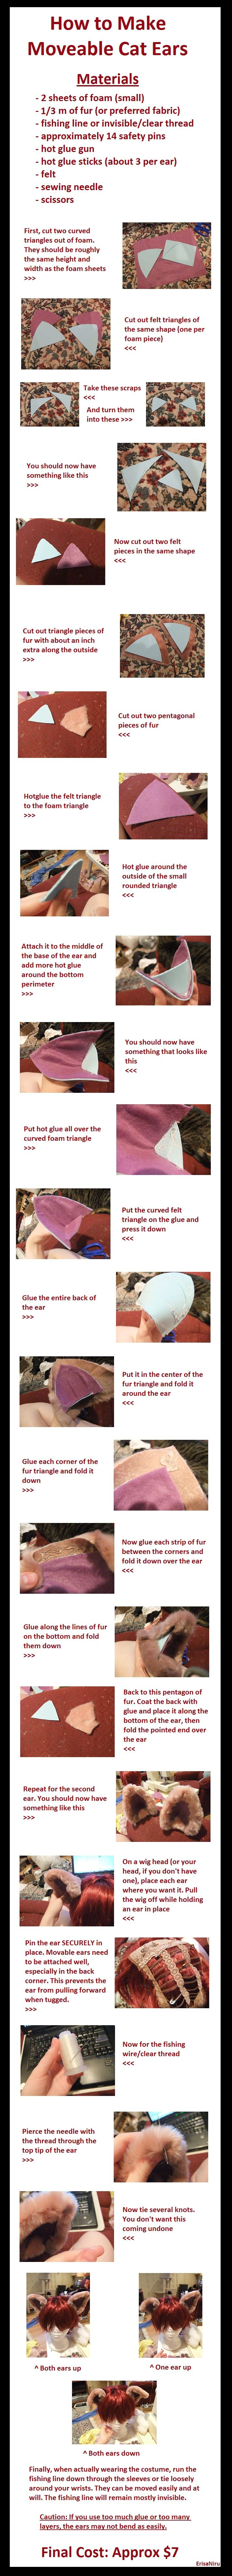 Moveable Cat Ear Tutorial by chameleoncosplayteam.deviantart.com on @deviantART